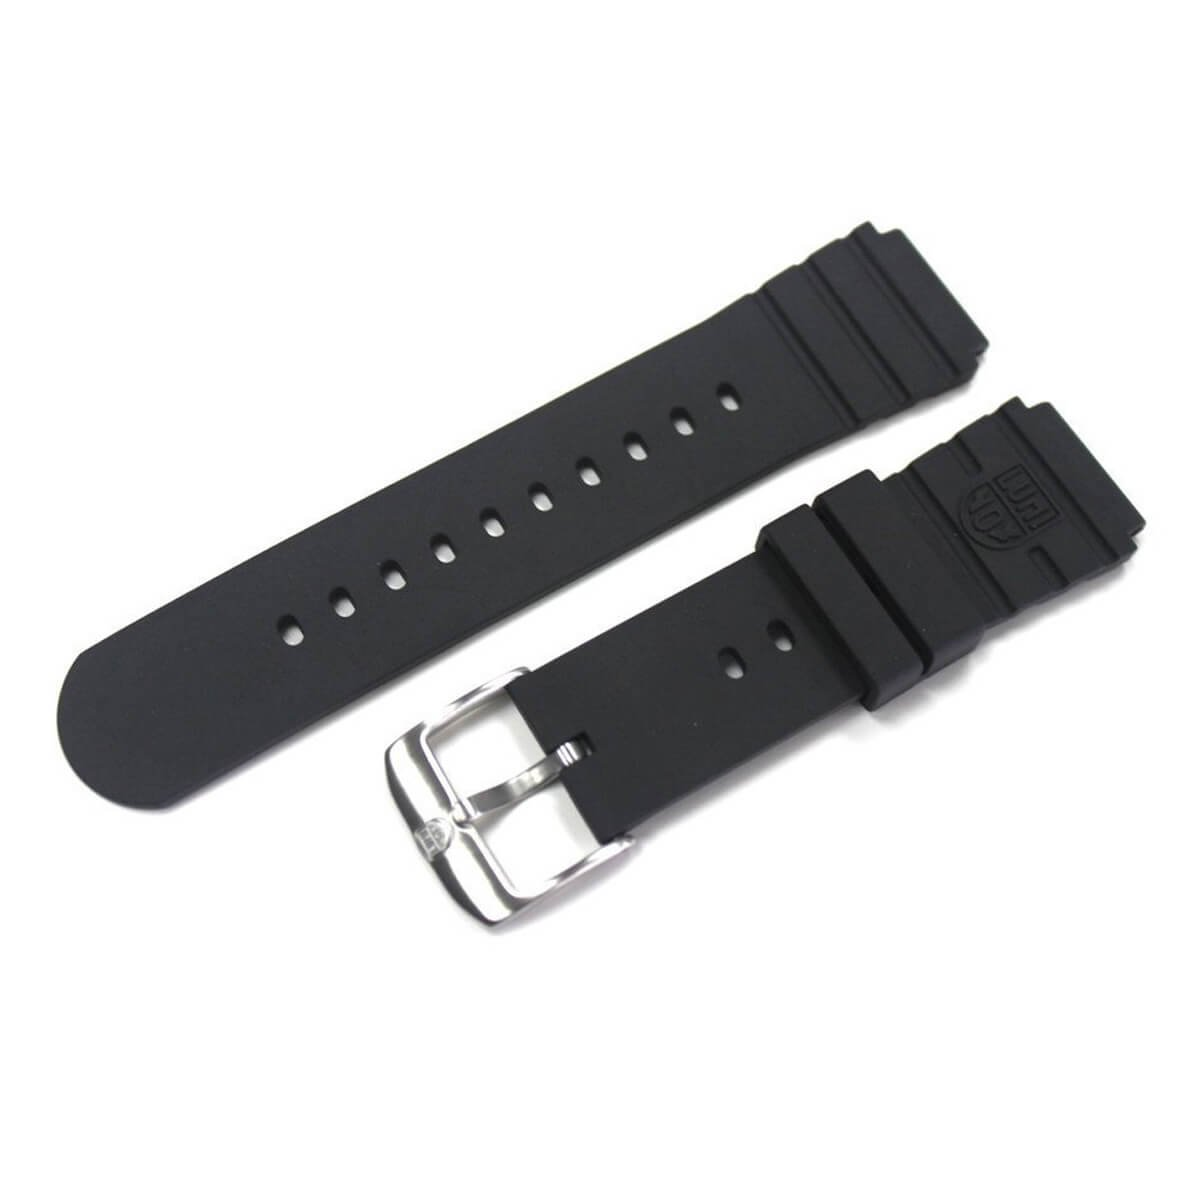 Luminox DPB 22 mm Black Polymere Replacement Band for 3000, 3900, 3100, 3200, 3400, and 3600 series by Luminox